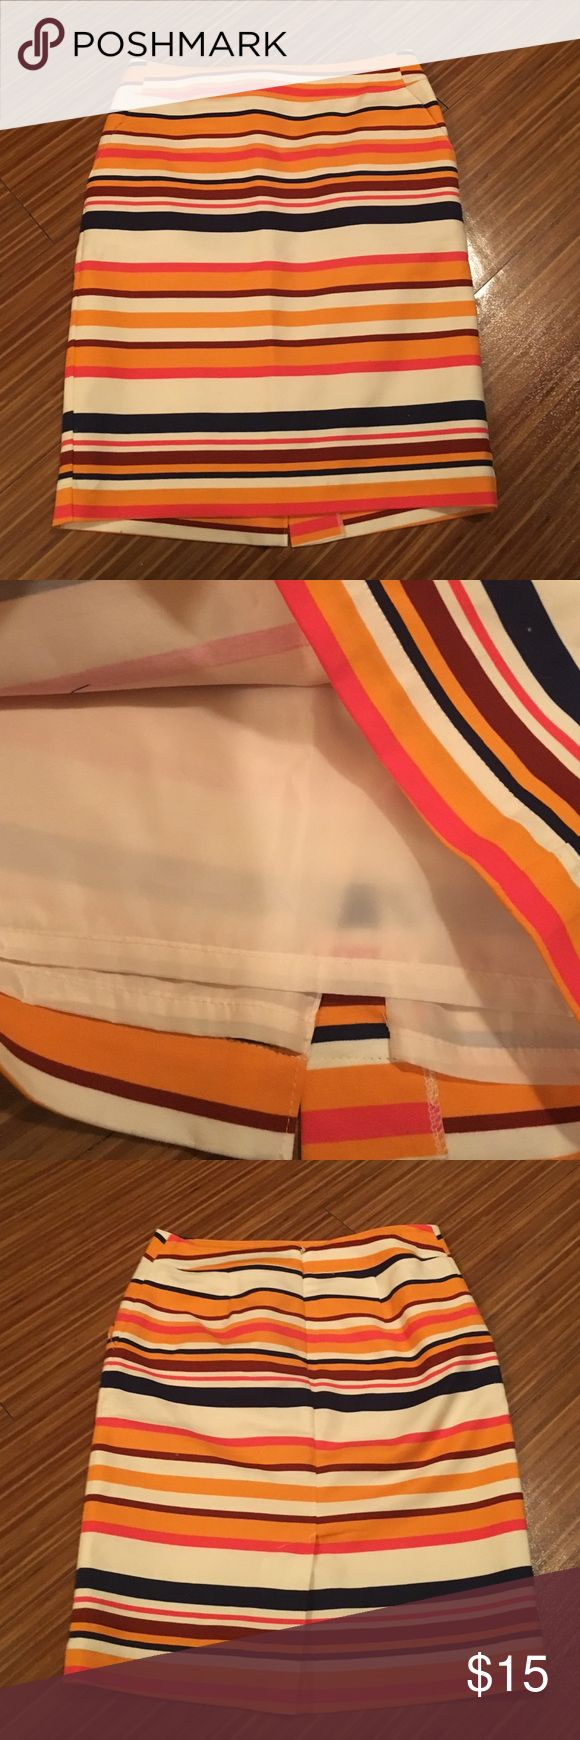 Striped multi-color pencil skirt Multi-colored striped pencil skirt with small slit in back and two pockets. Fully lined Merona Skirts Pencil